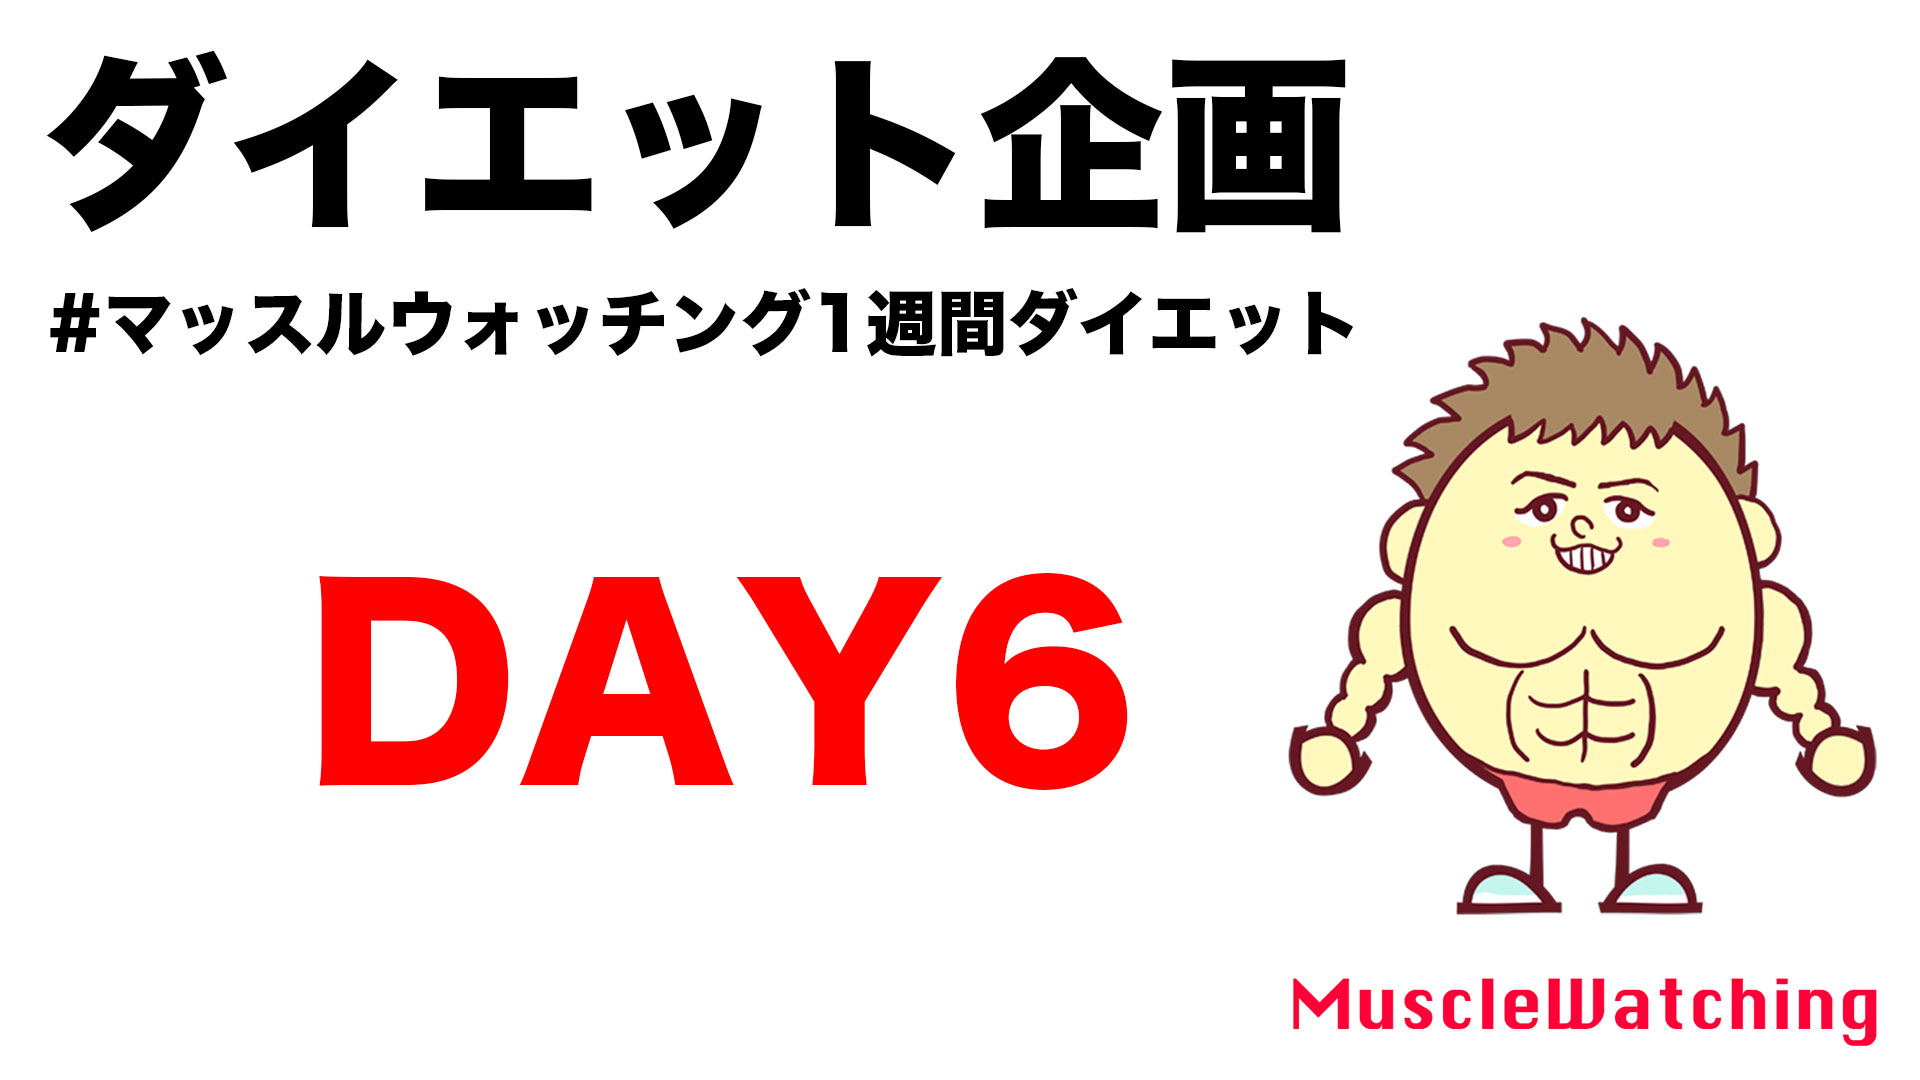 【DAY6】女性限定1週間ダイエット企画 | Muscle Watching